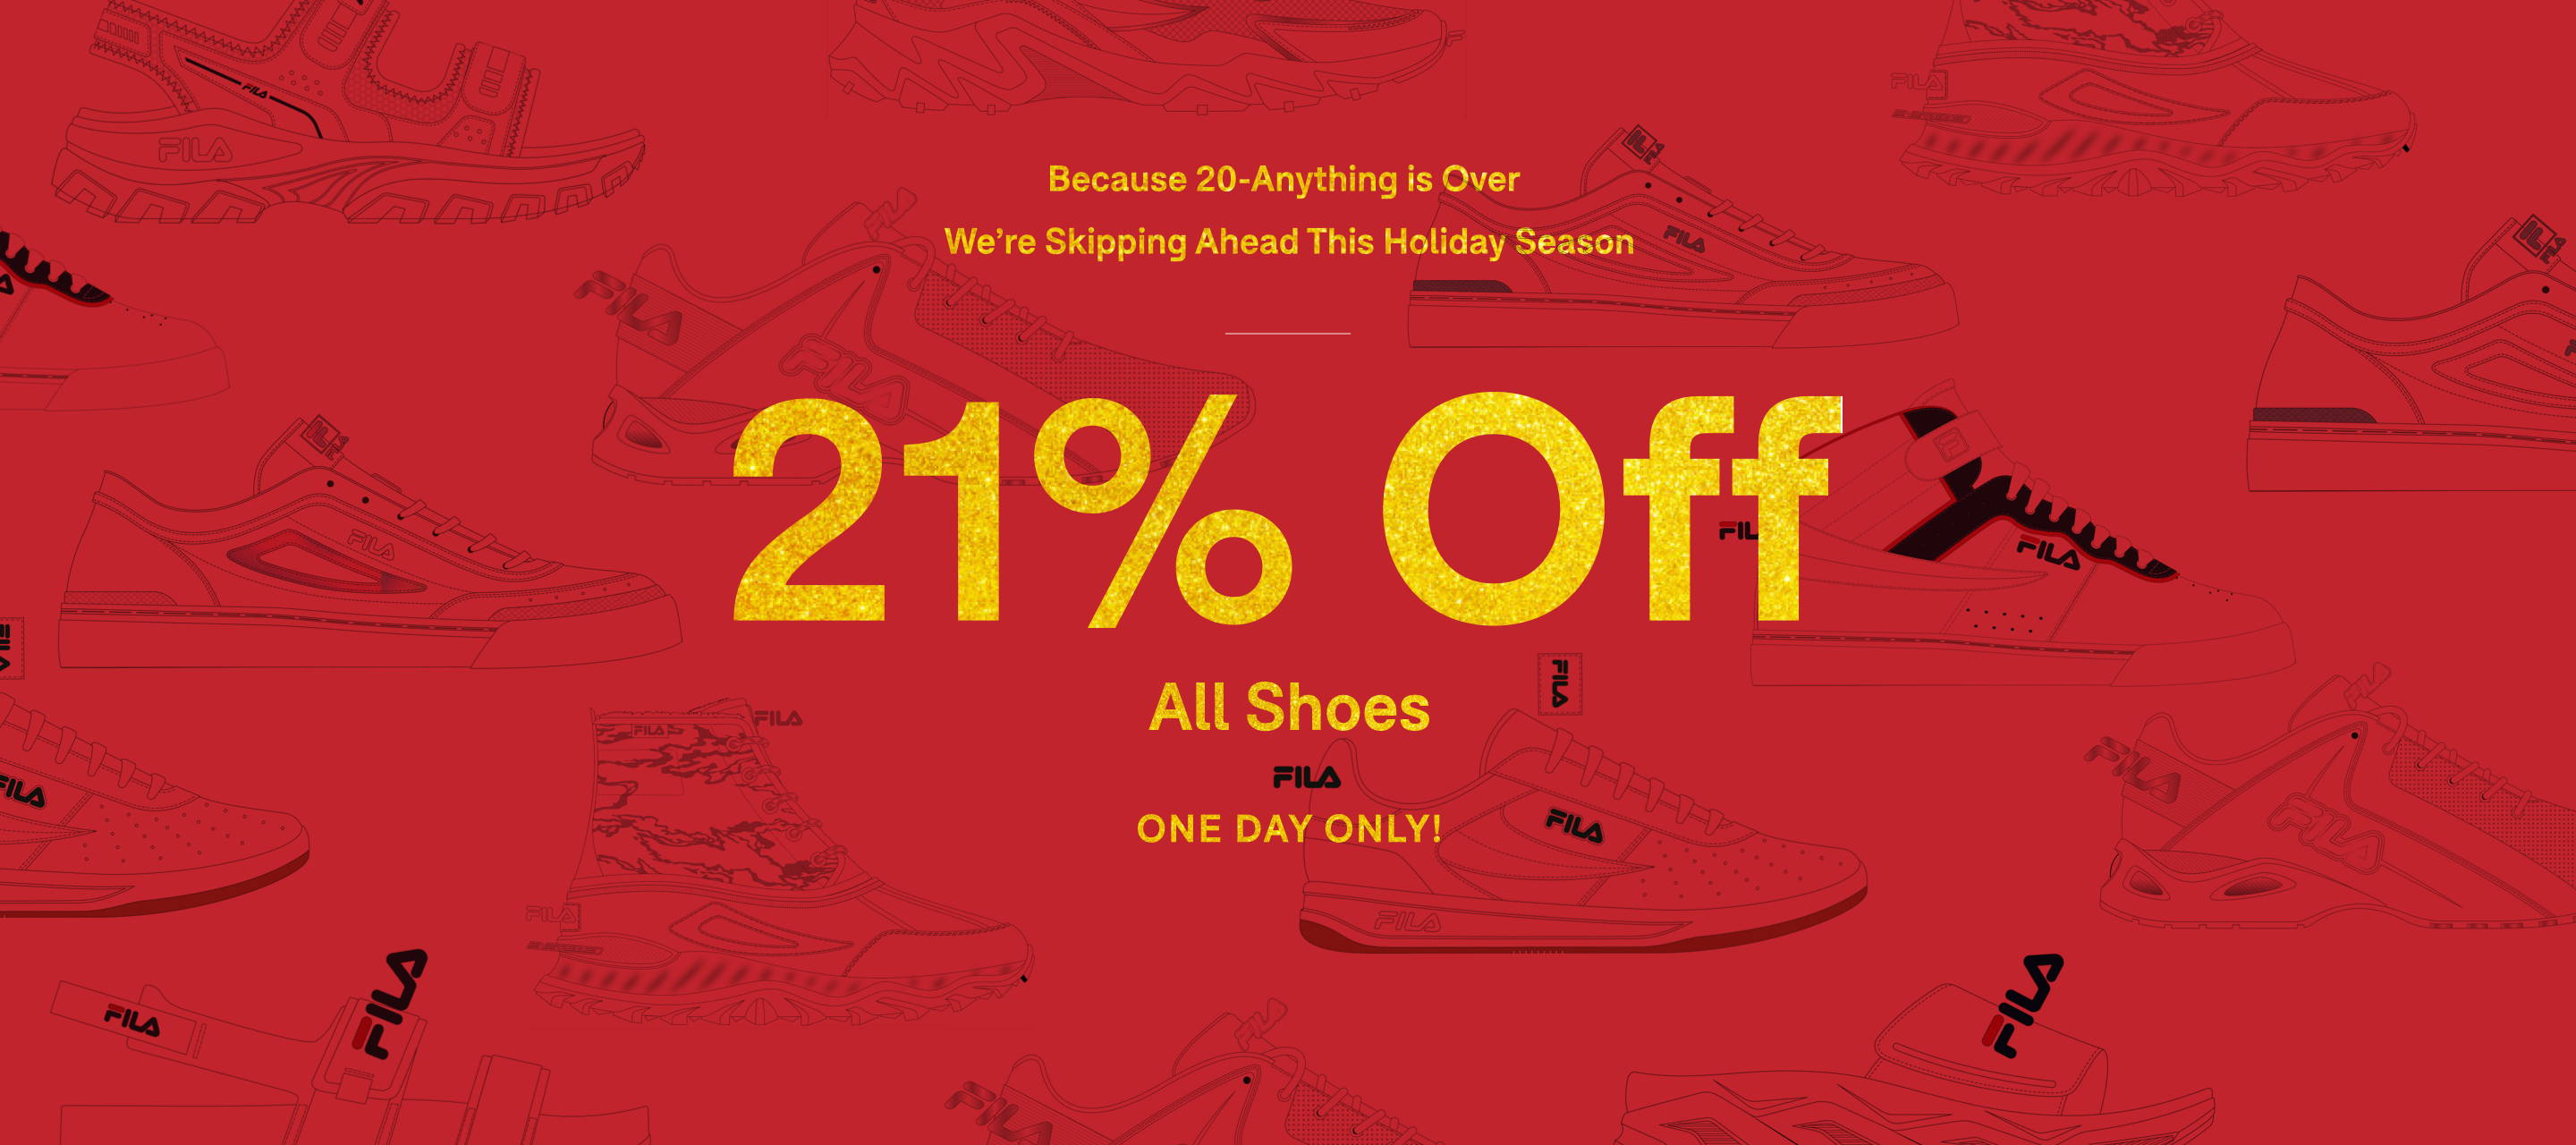 21% Off All Shoes